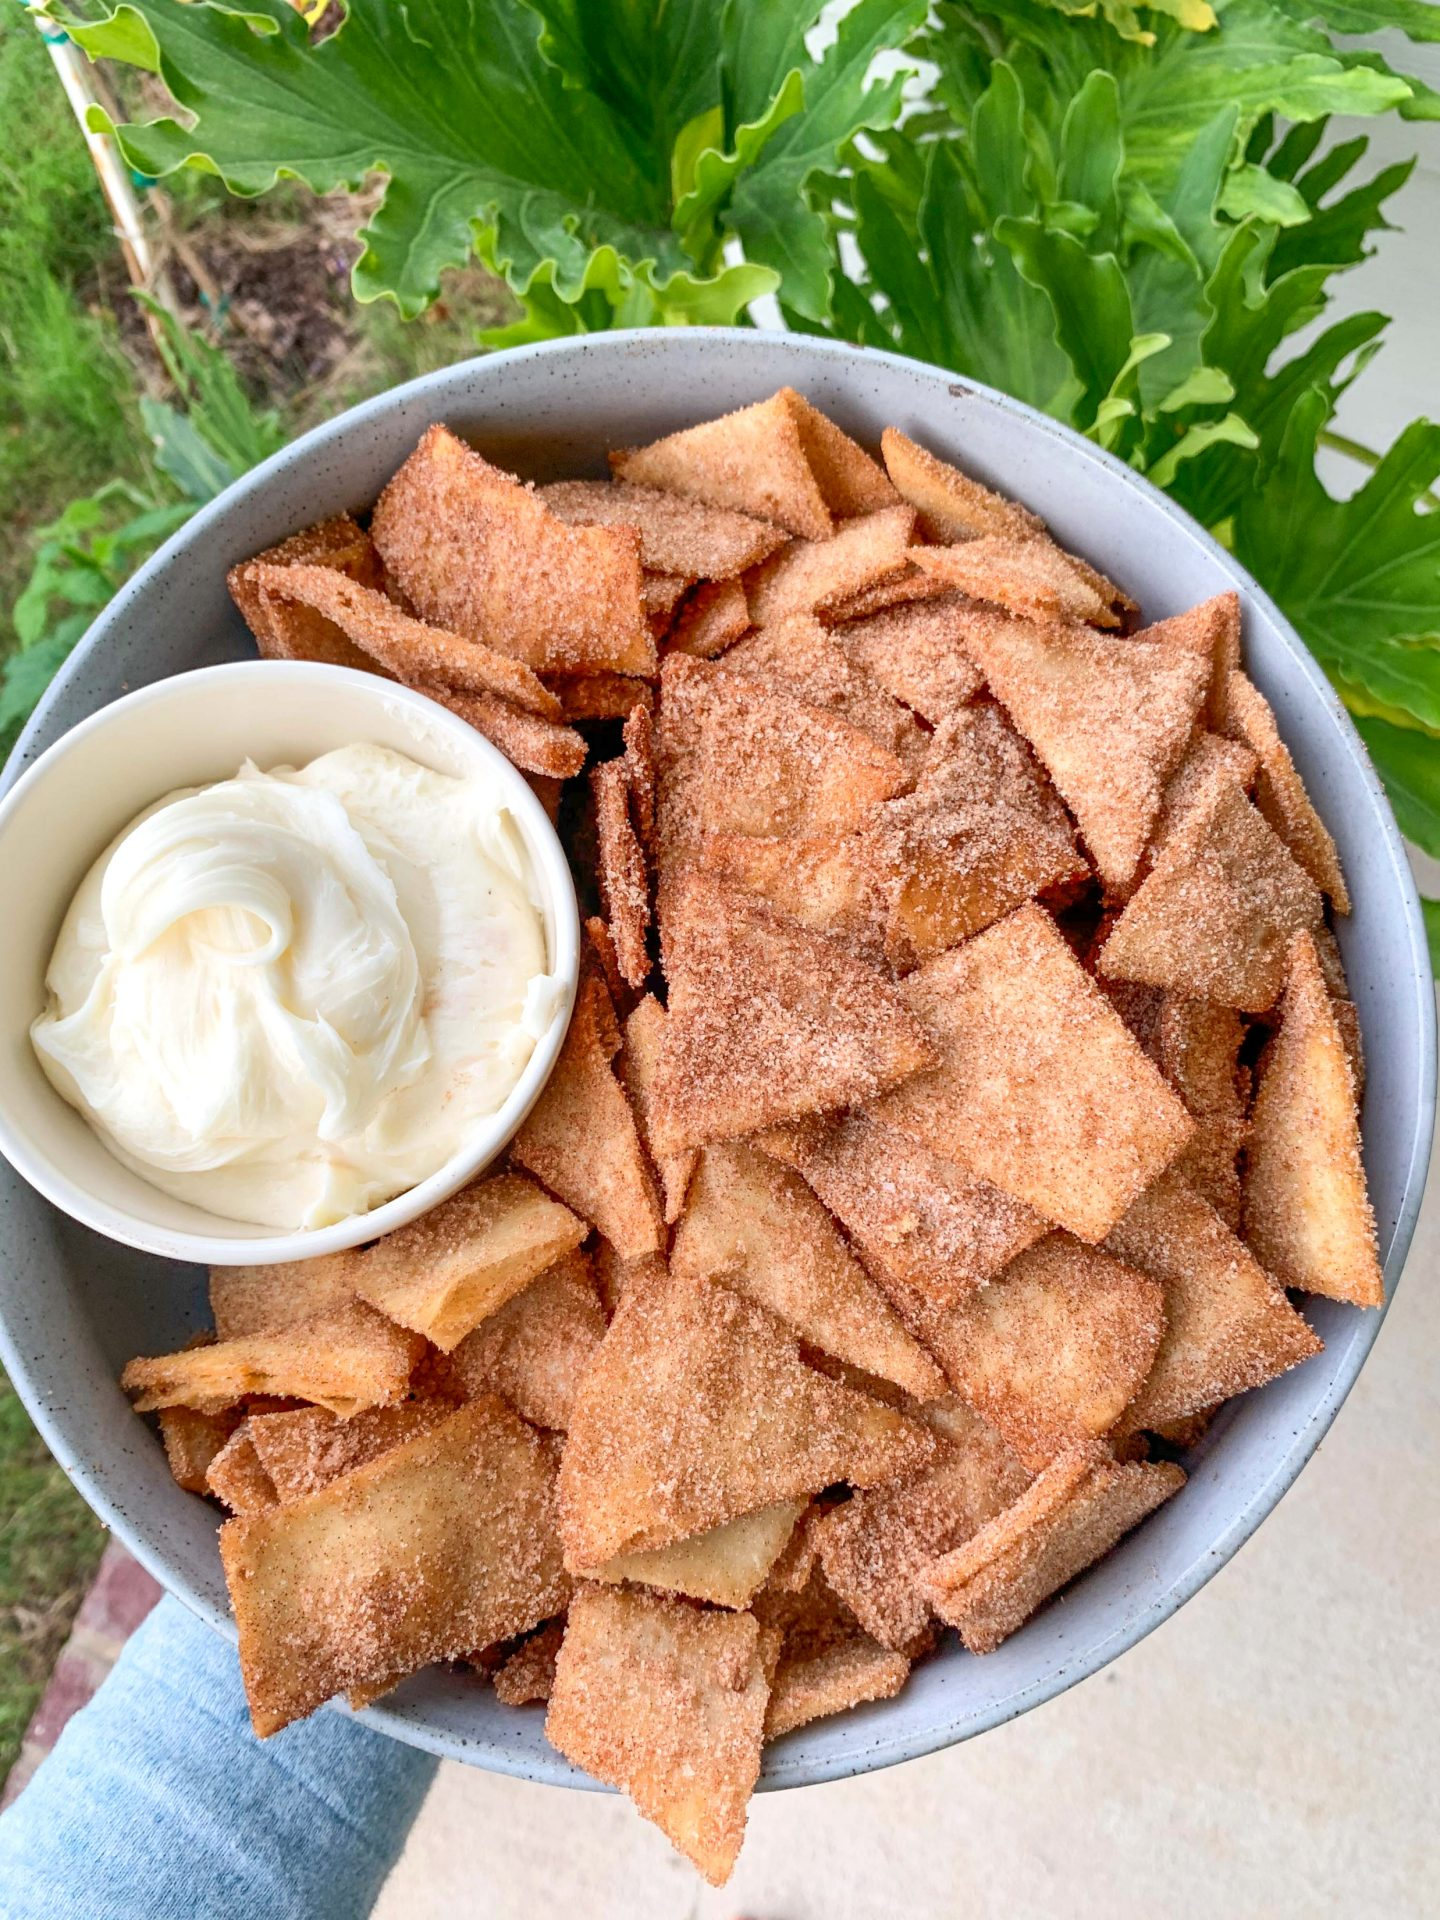 gluten free, dairy free, vegan, snack, party food, tortillas, recipe, cinnamon sugar, dessert, chips, cream cheese icing, cream cheese frosting, kite hill, dessert recipe, vegan recipes, food for the 4th of July,